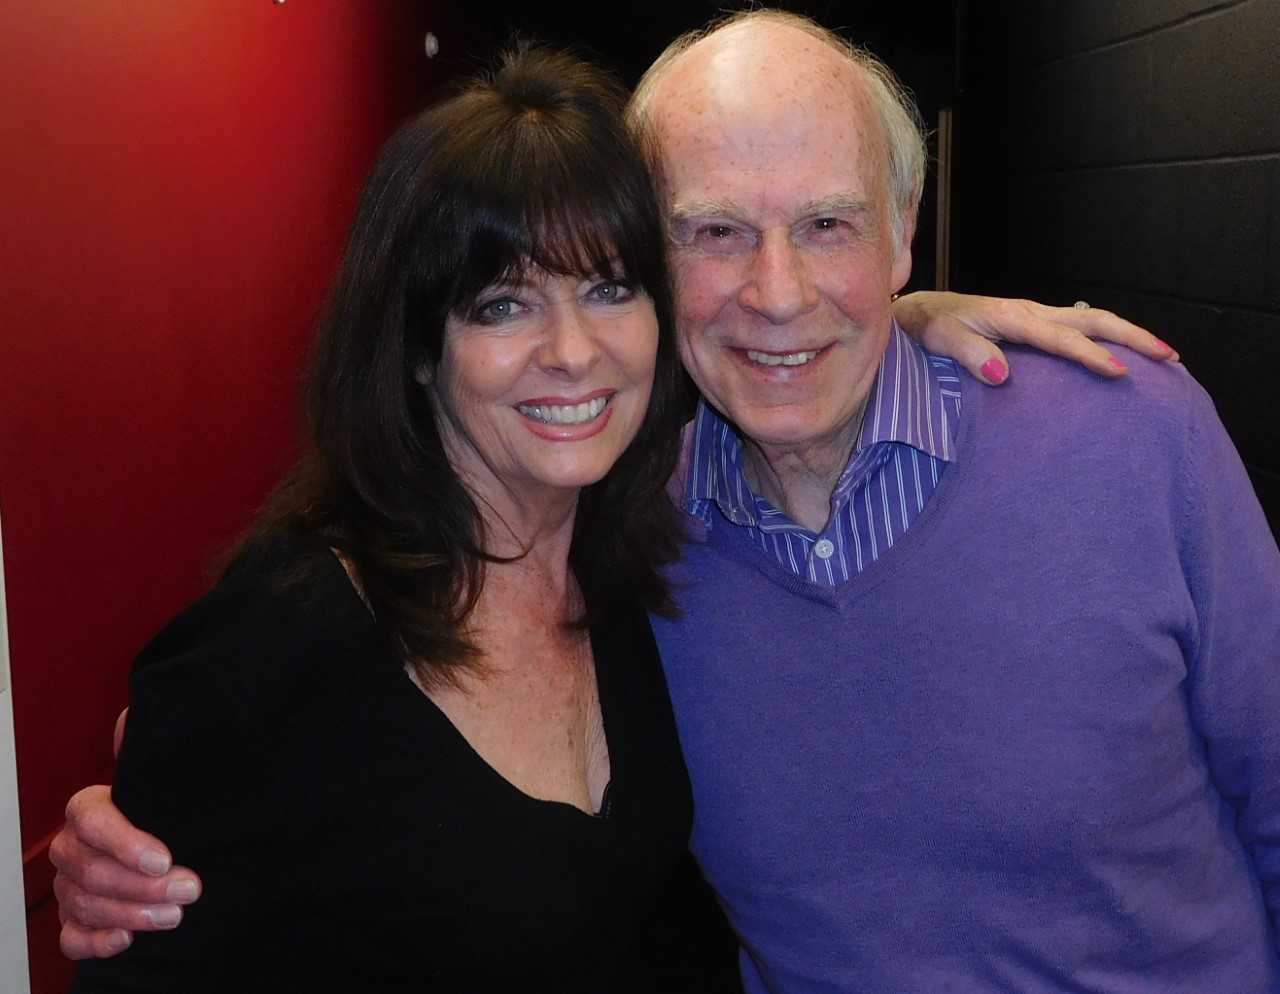 Vicki Michelle, star of Hormonal Housewives, with John Hannam.